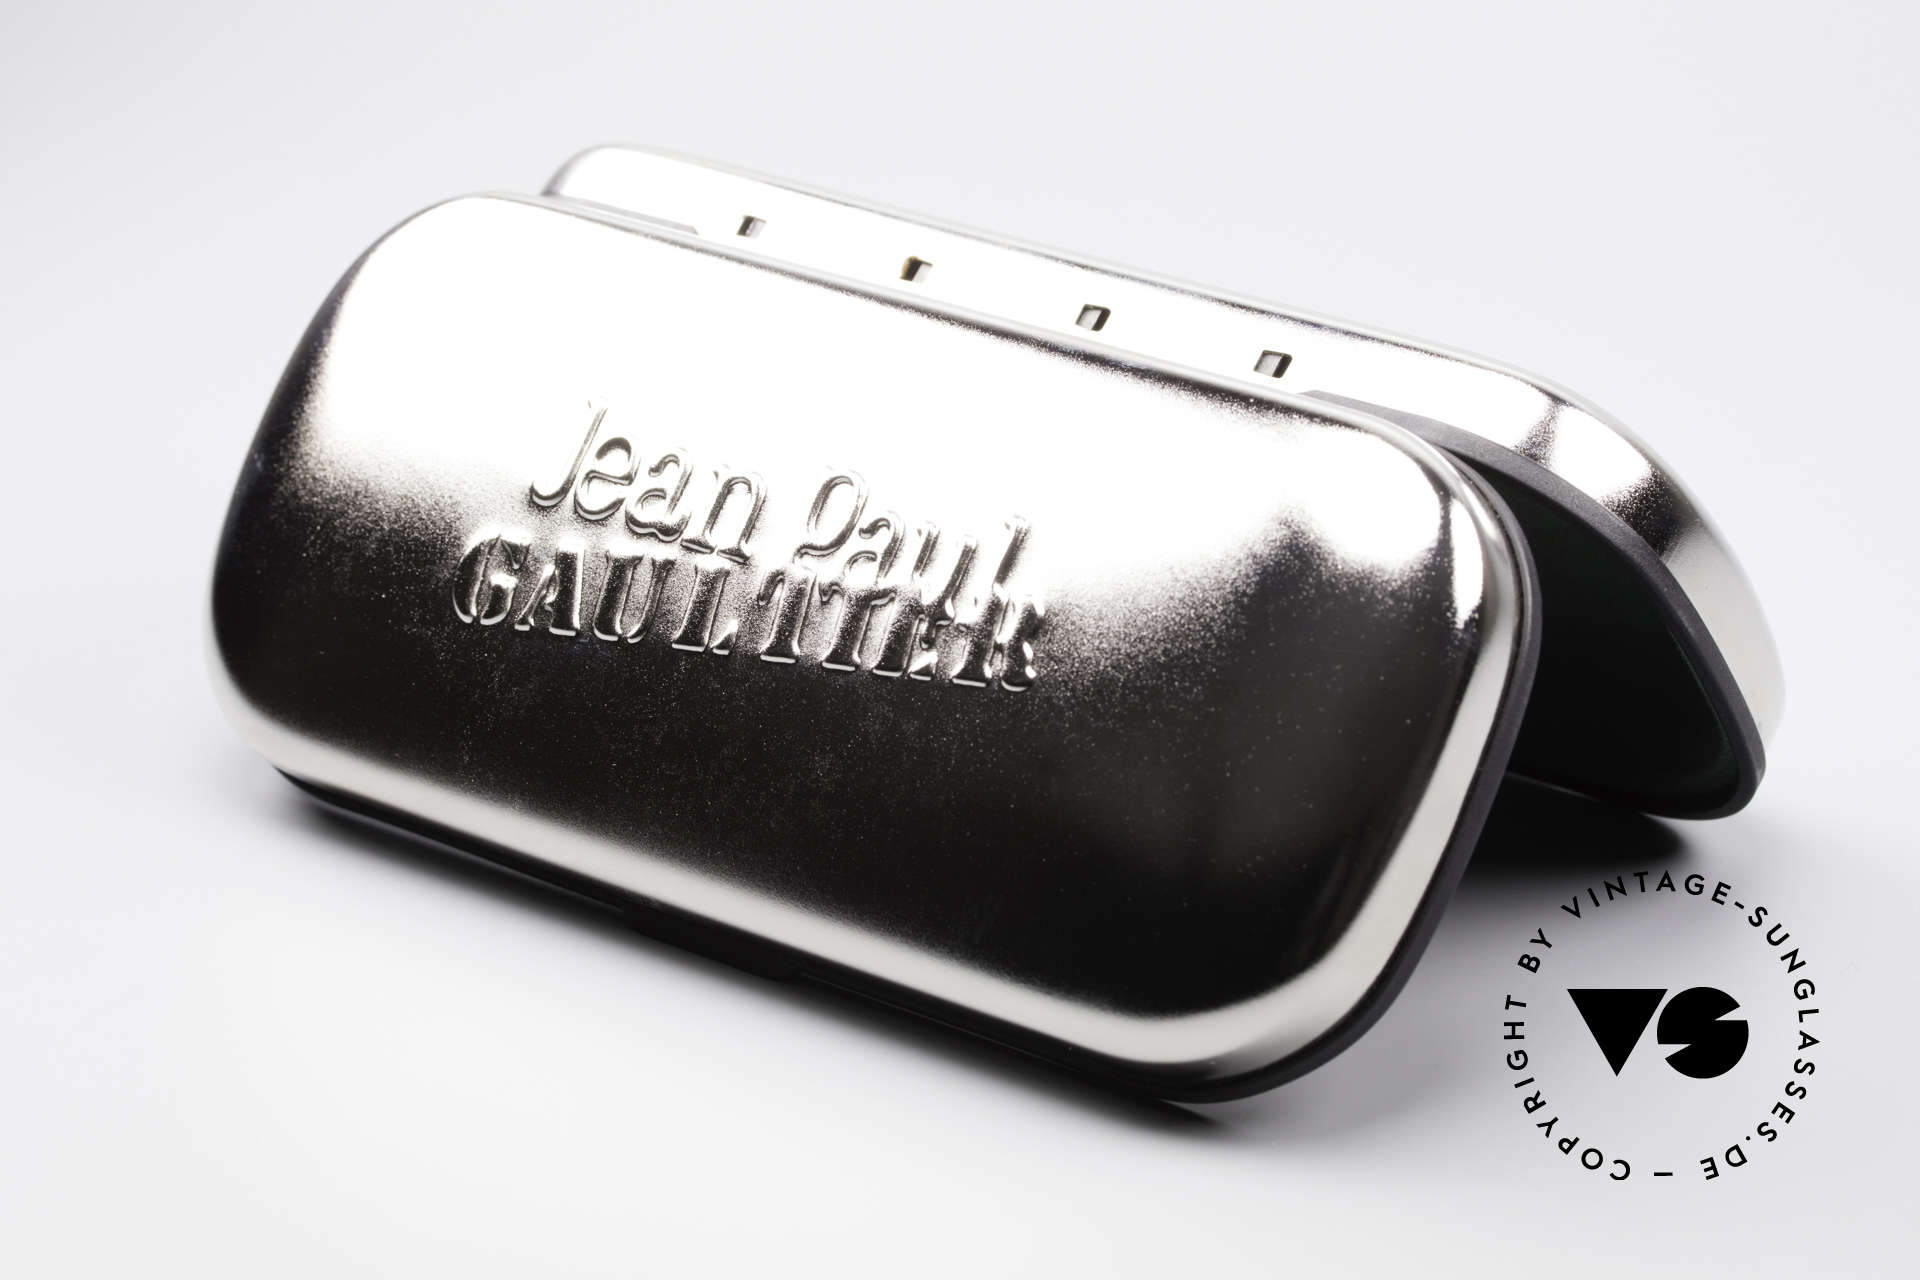 Jean Paul Gaultier 10 Cases Old Original JP Gaultier Cases, Size: extra large, Made for Men and Women